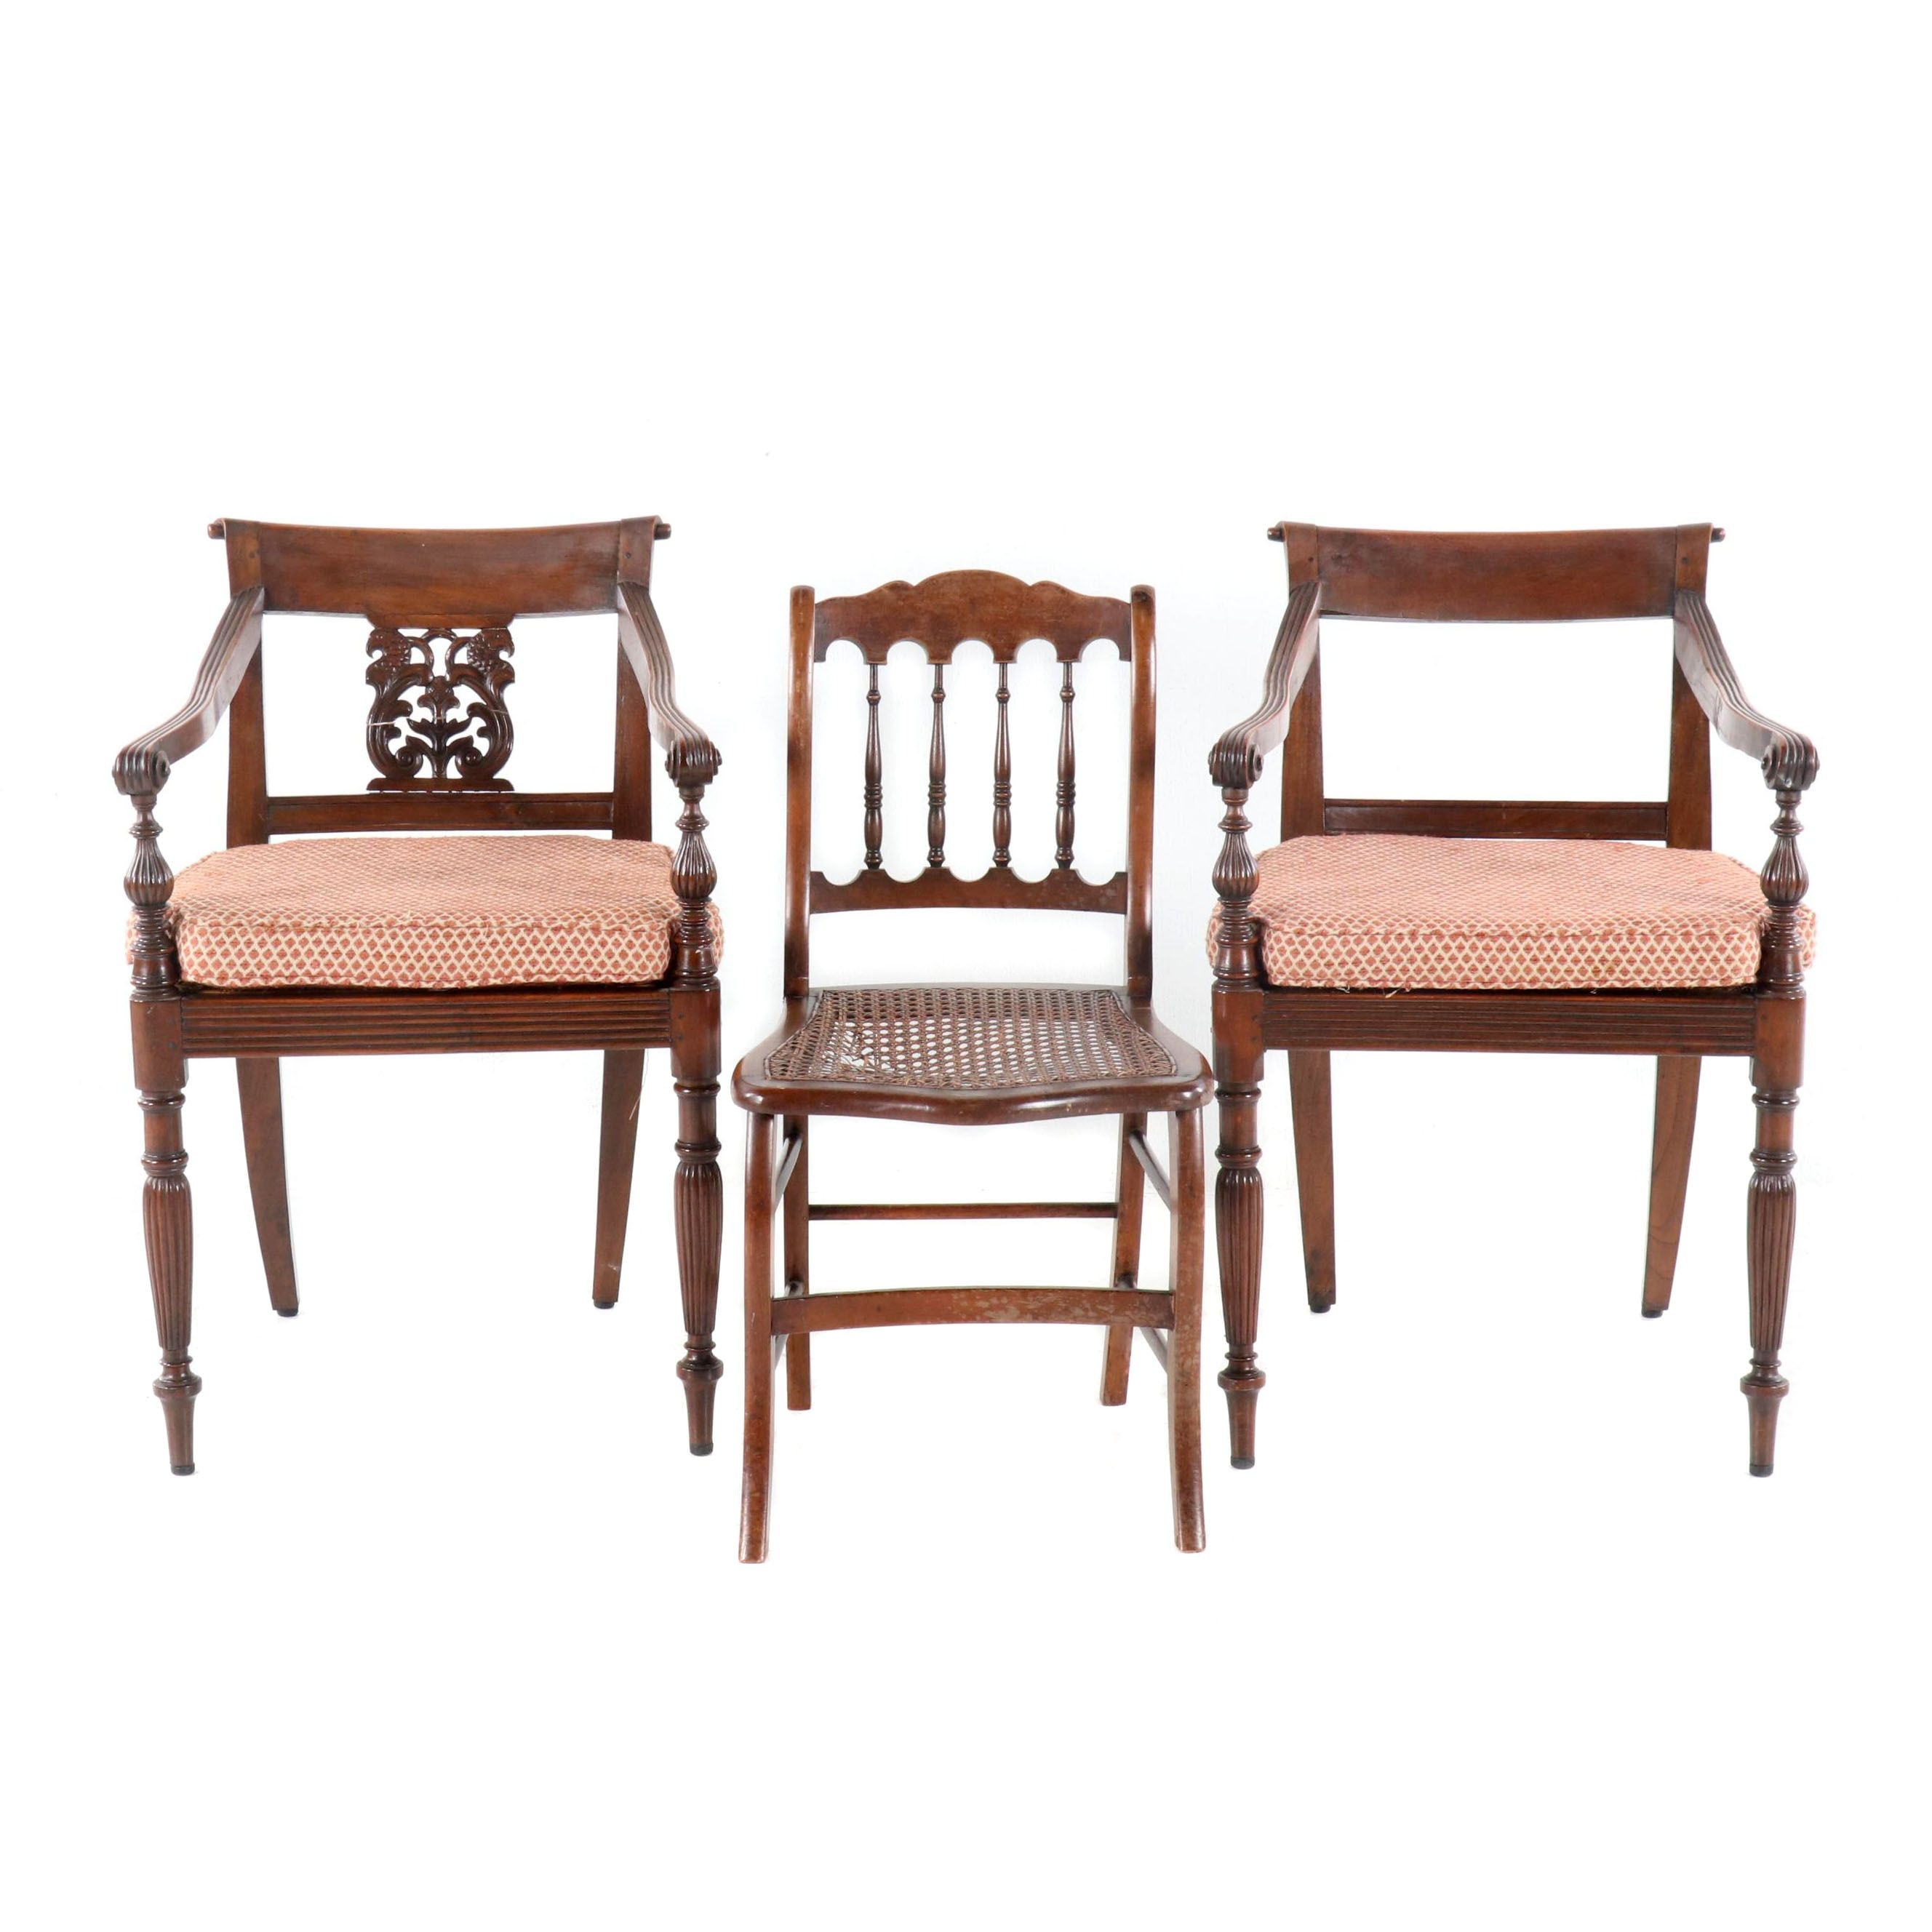 Regency Style Armchairs and Cane Side Chair, 20th Century